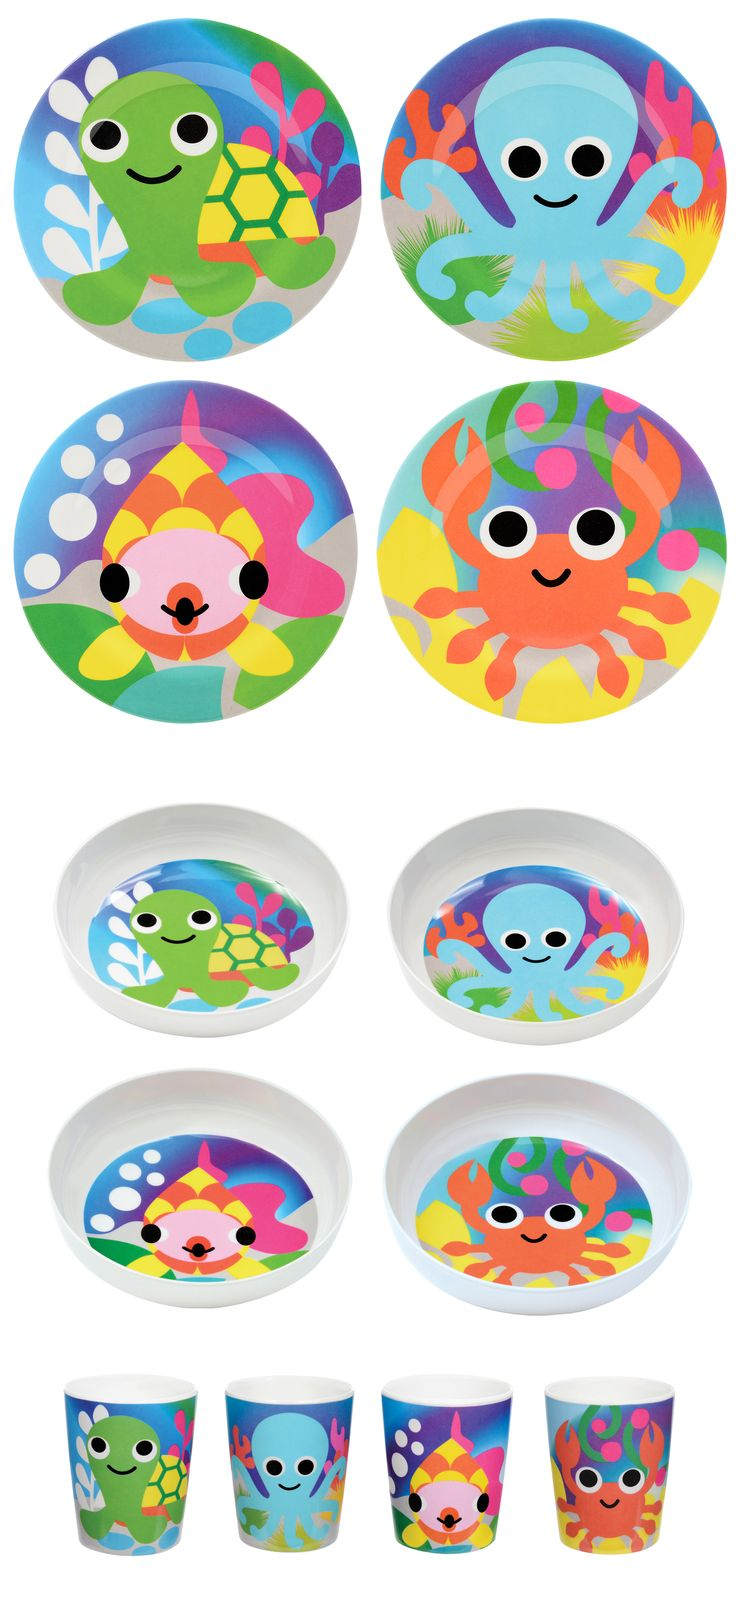 best kids images on pinterest  target sleepover and tray - french bull ocean collection melamine kids plates kids bowls kids juicecups